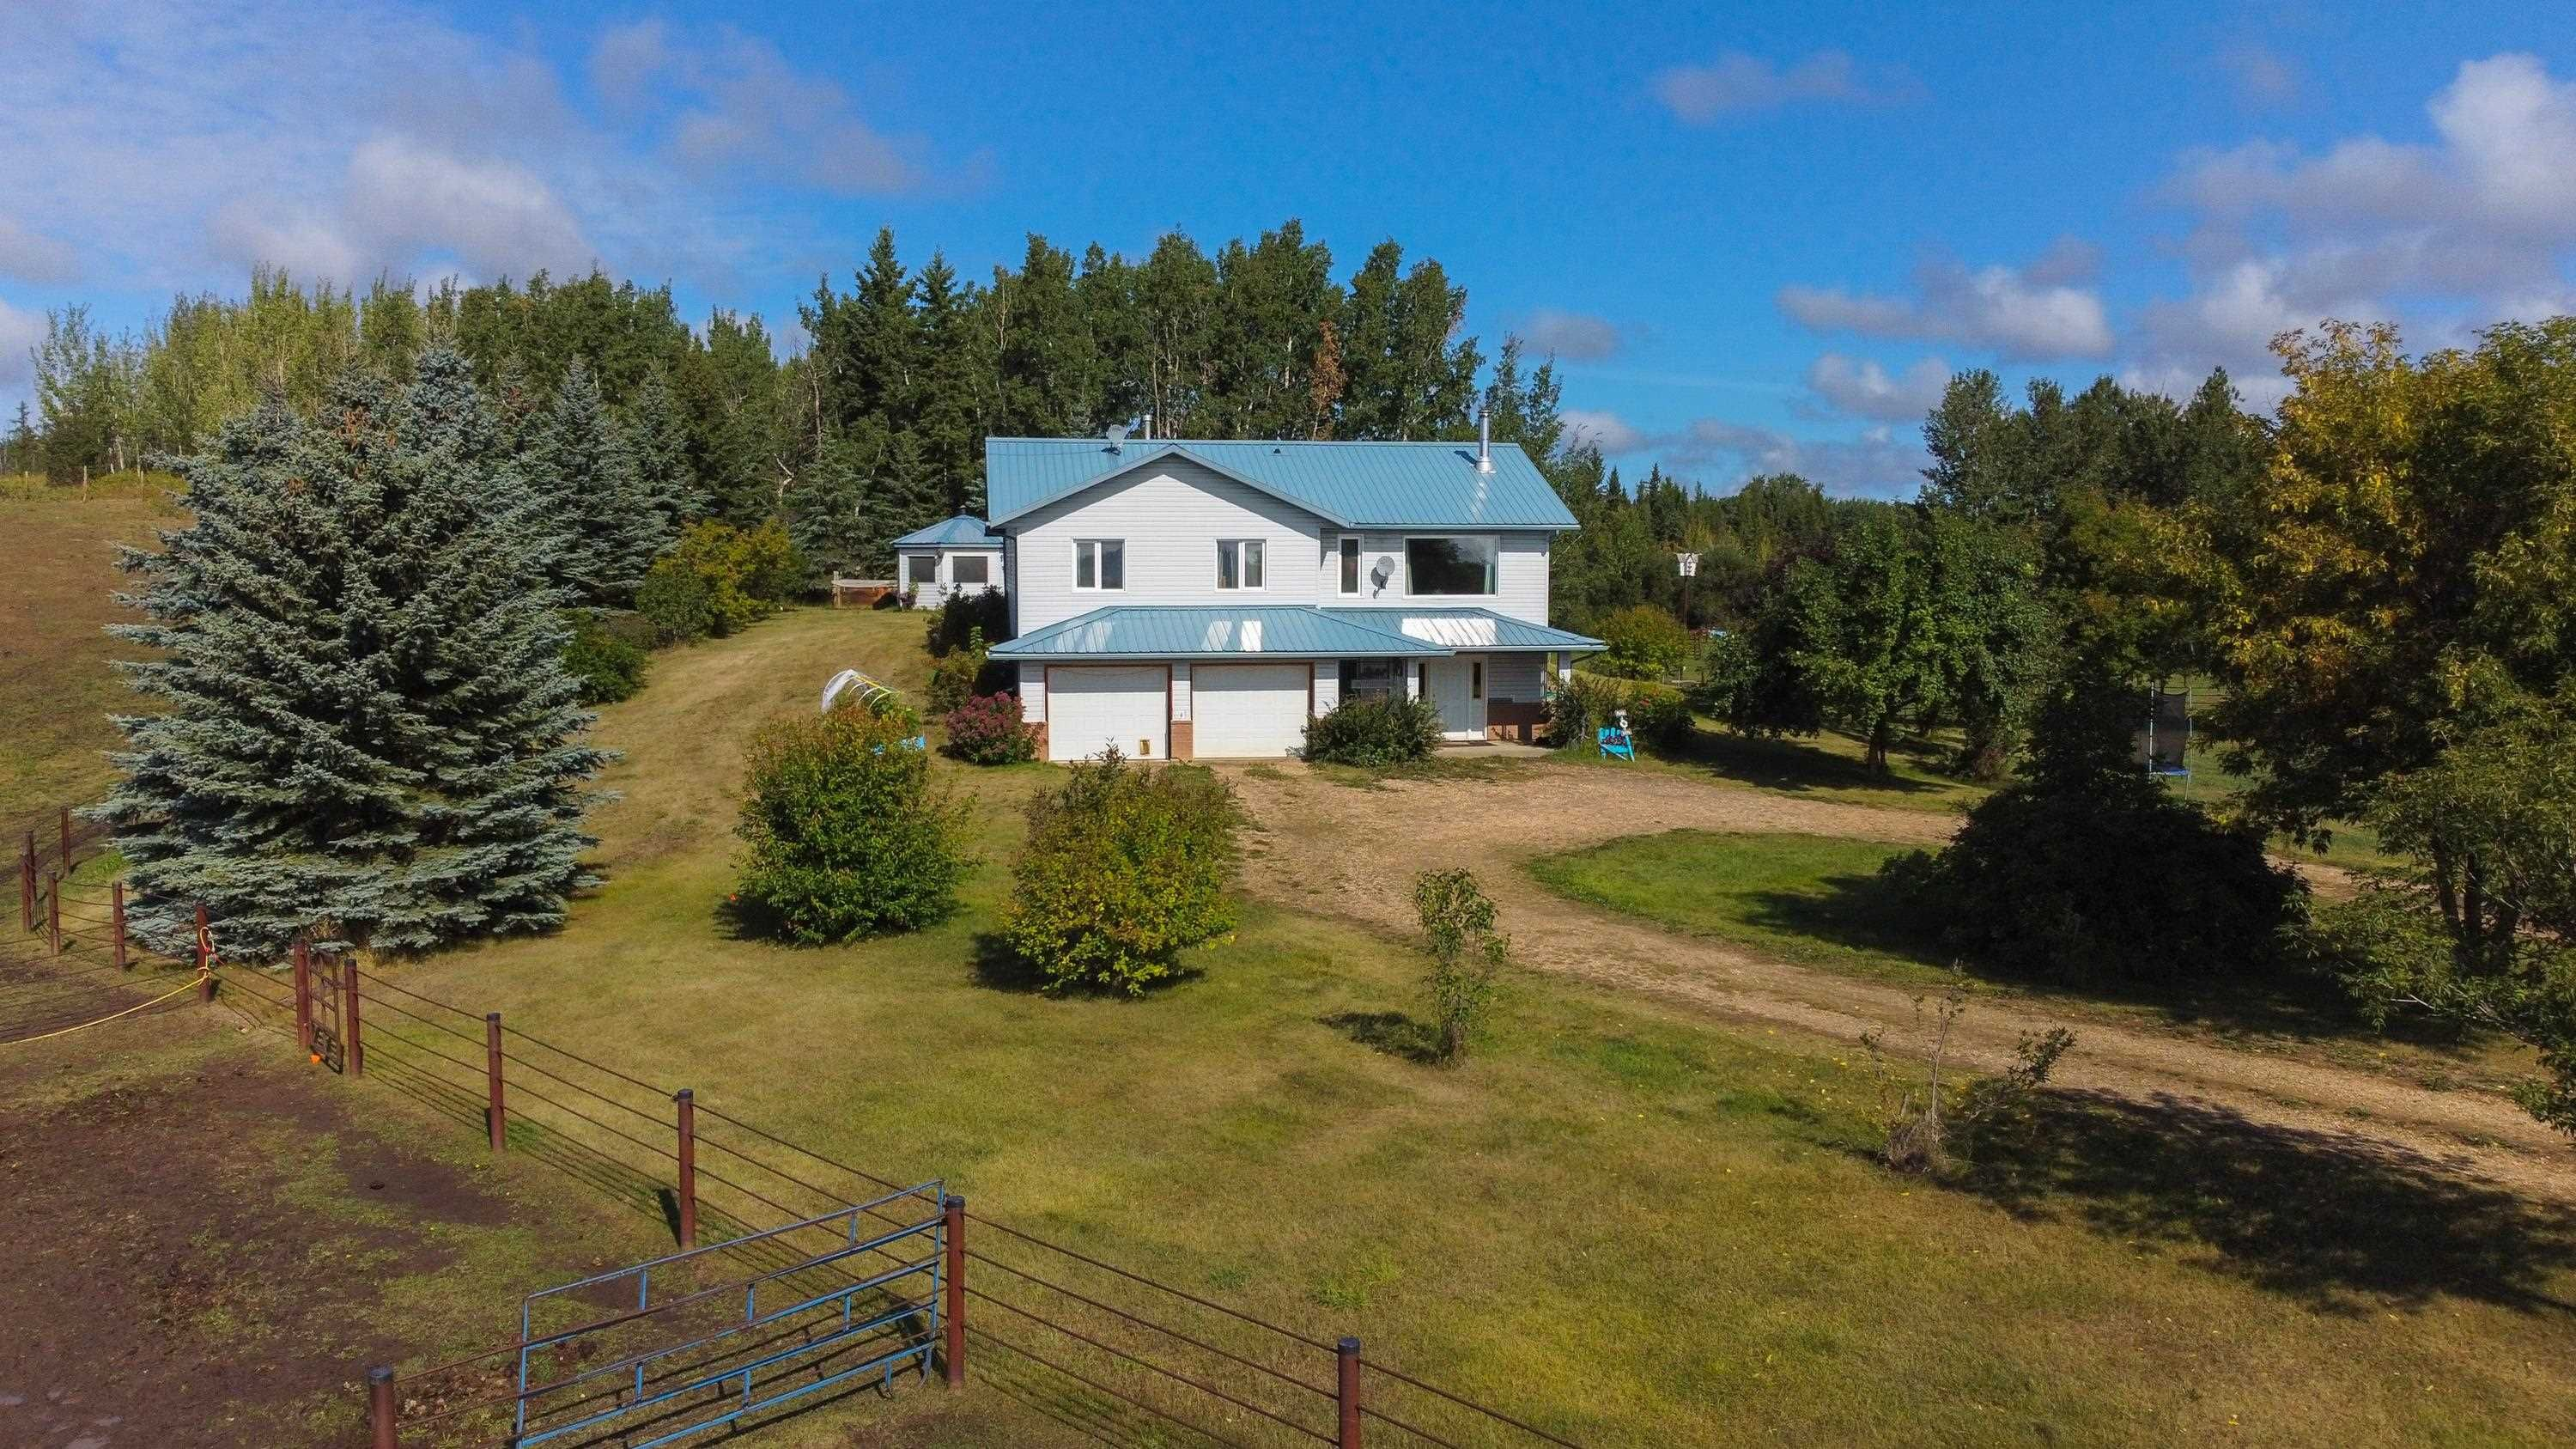 Main Photo: 1114A Highway 16: Rural Parkland County House for sale : MLS®# E4260239